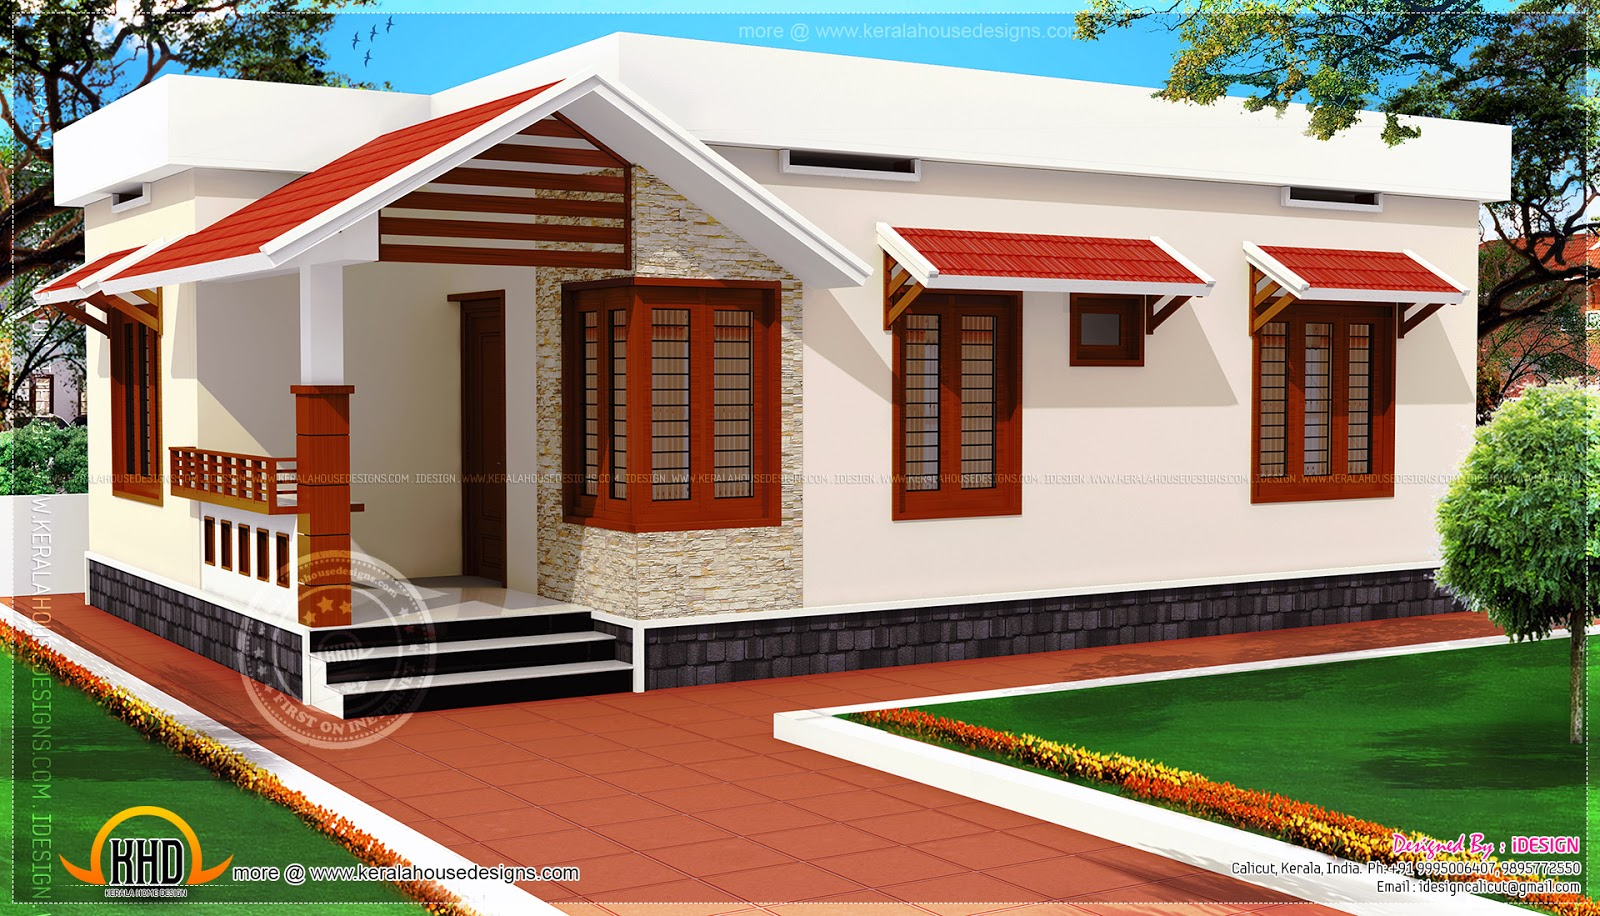 Low cost kerala home design in 730 square feet kerala for Home architecture facebook